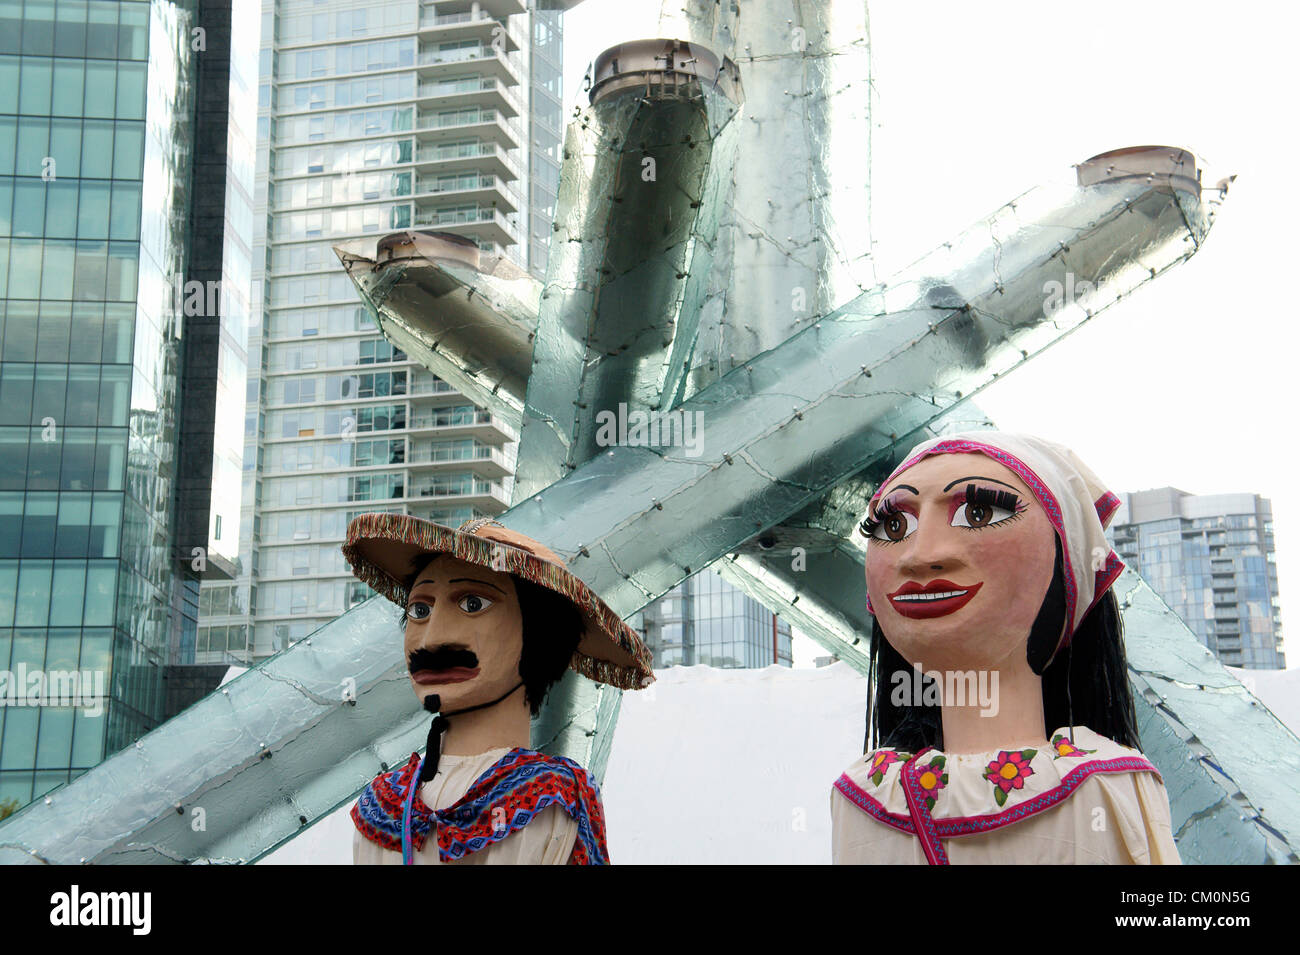 Giant Mexican puppets or mojigangas at  Mexico Fest  celebrations in Vancouver, British Columbia, Canada. - Stock Image